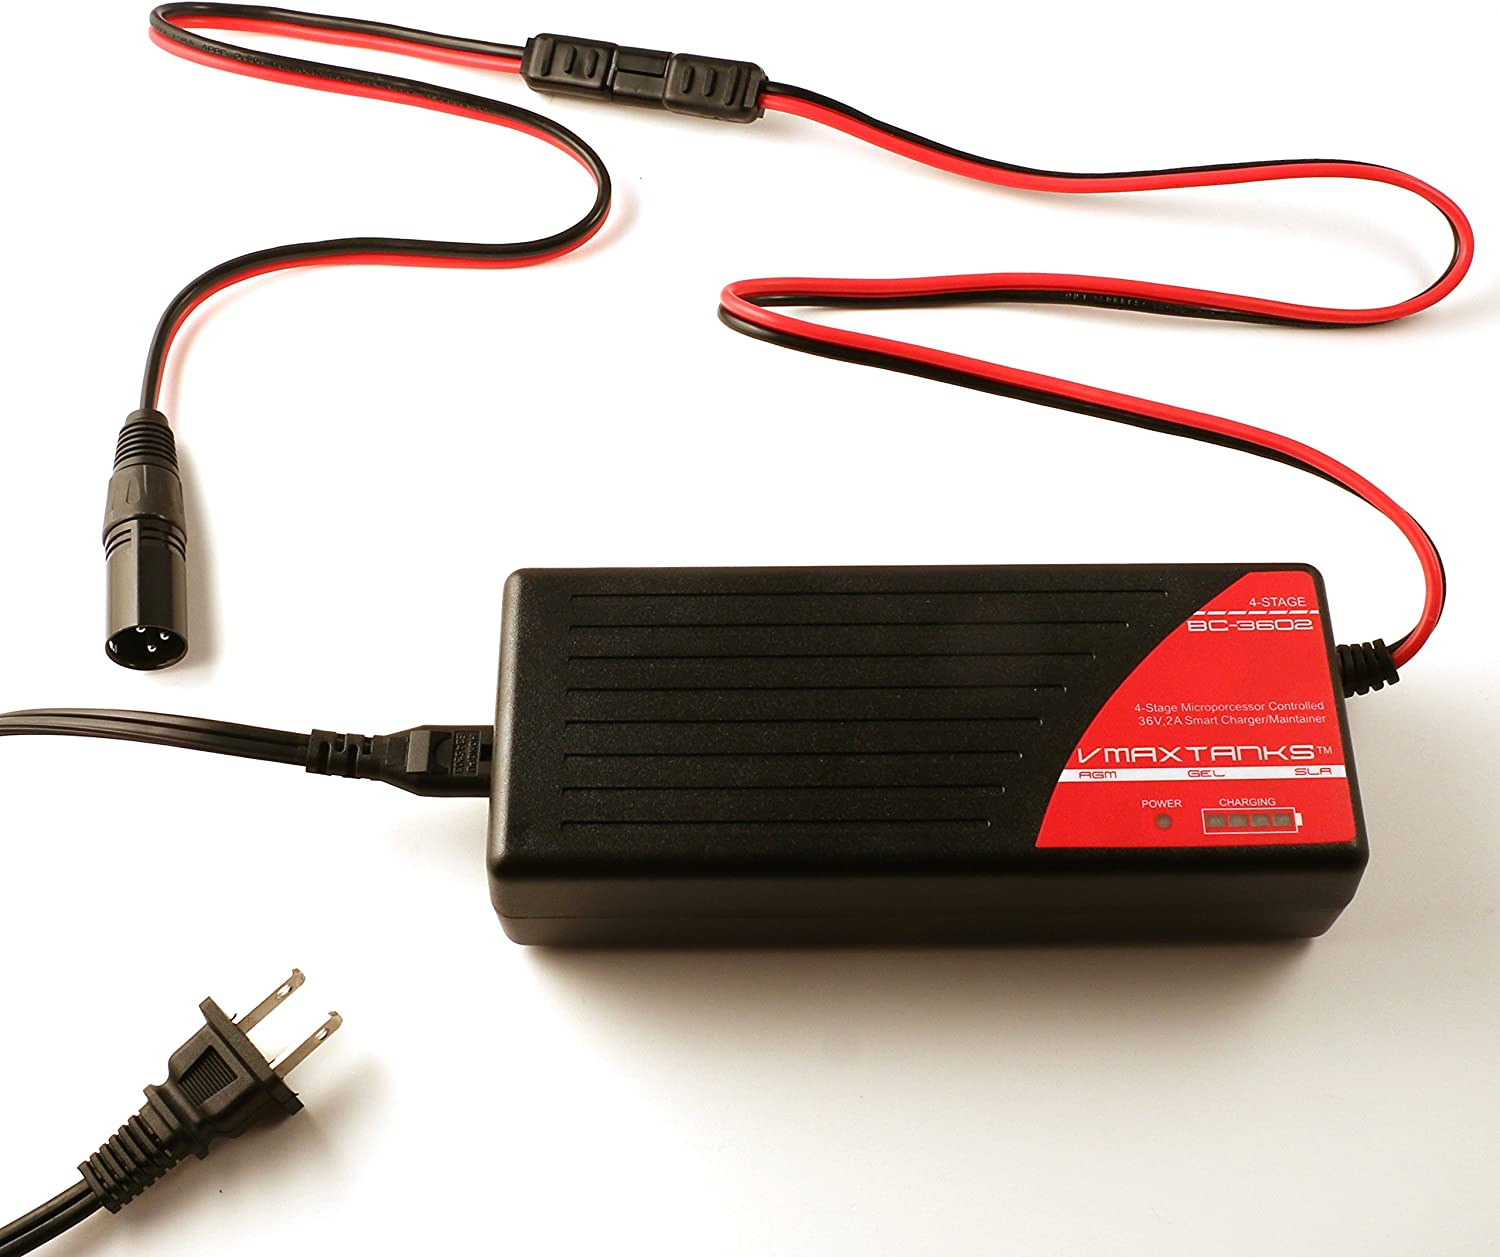 amazon.com: bc3602 + xlr 3 pin male connector: vmax bc3602 36v 2 amp  4-stage smart battery charger and maintainer: sports & outdoors  amazon.com